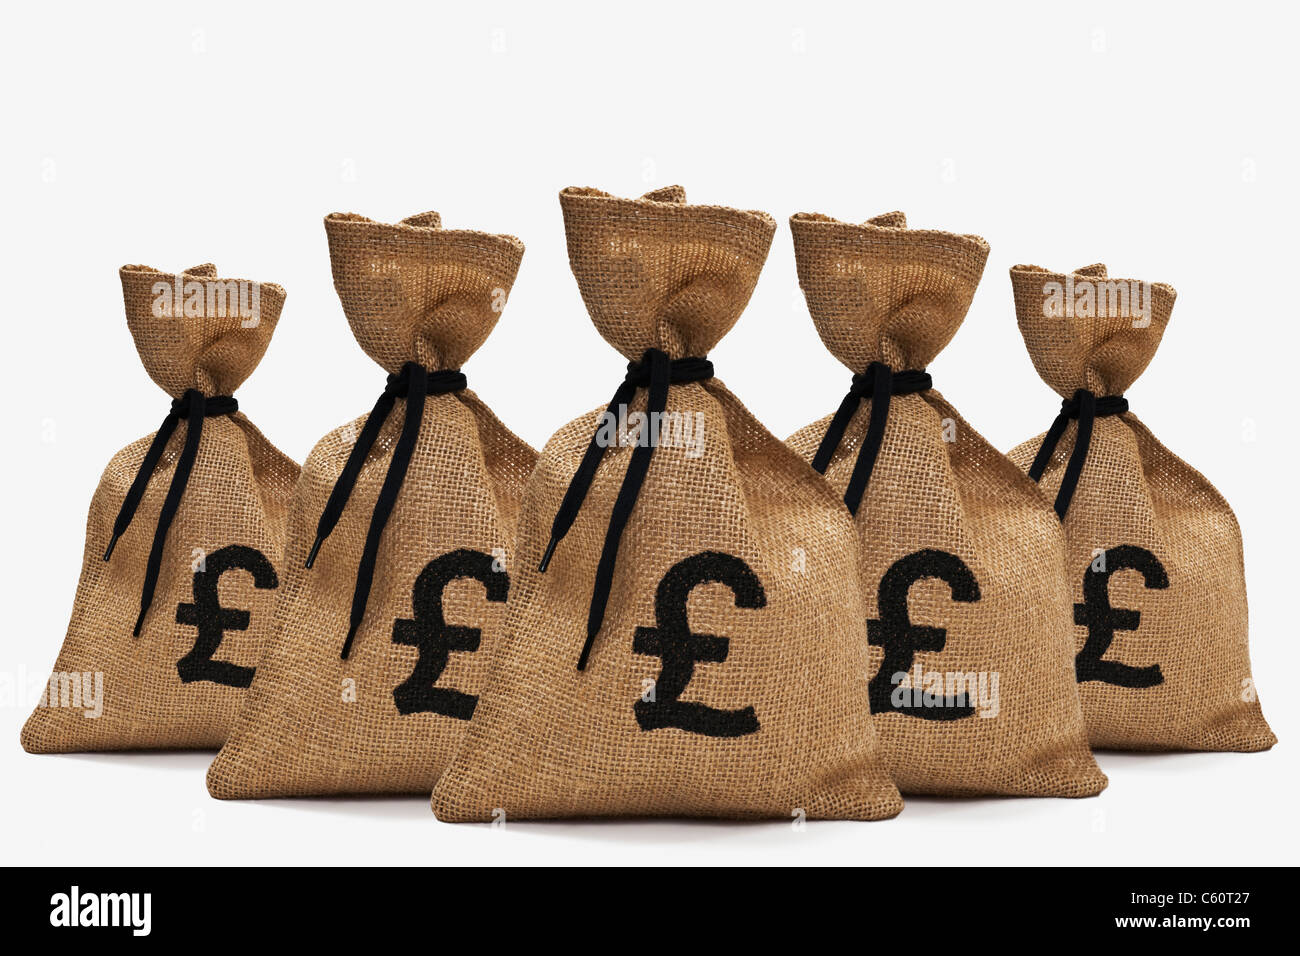 fünf Geldsäcke mit Pfund-Symbolen stehen hintereinander | five money bags with pound signs back-to-back Stock Photo